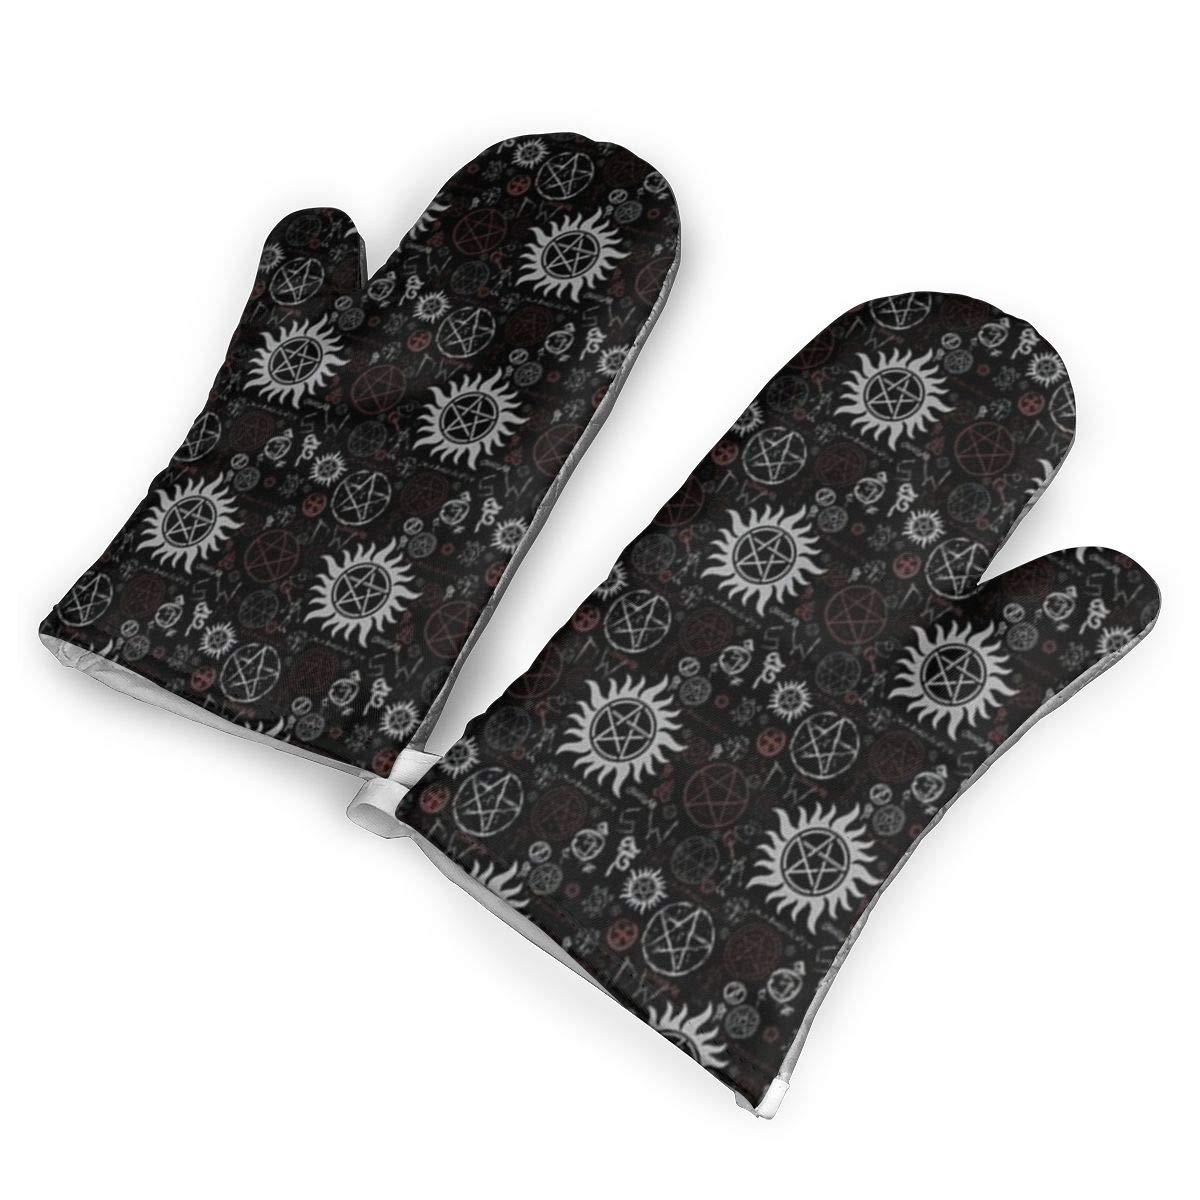 QOQD Supernatural Symbols Black Oven Mitts with Polyester Fabric Printed Pattern,1 Pair of Heat Resistant Oven Gloves for Cooking,Grilling,Barbecue Potholders